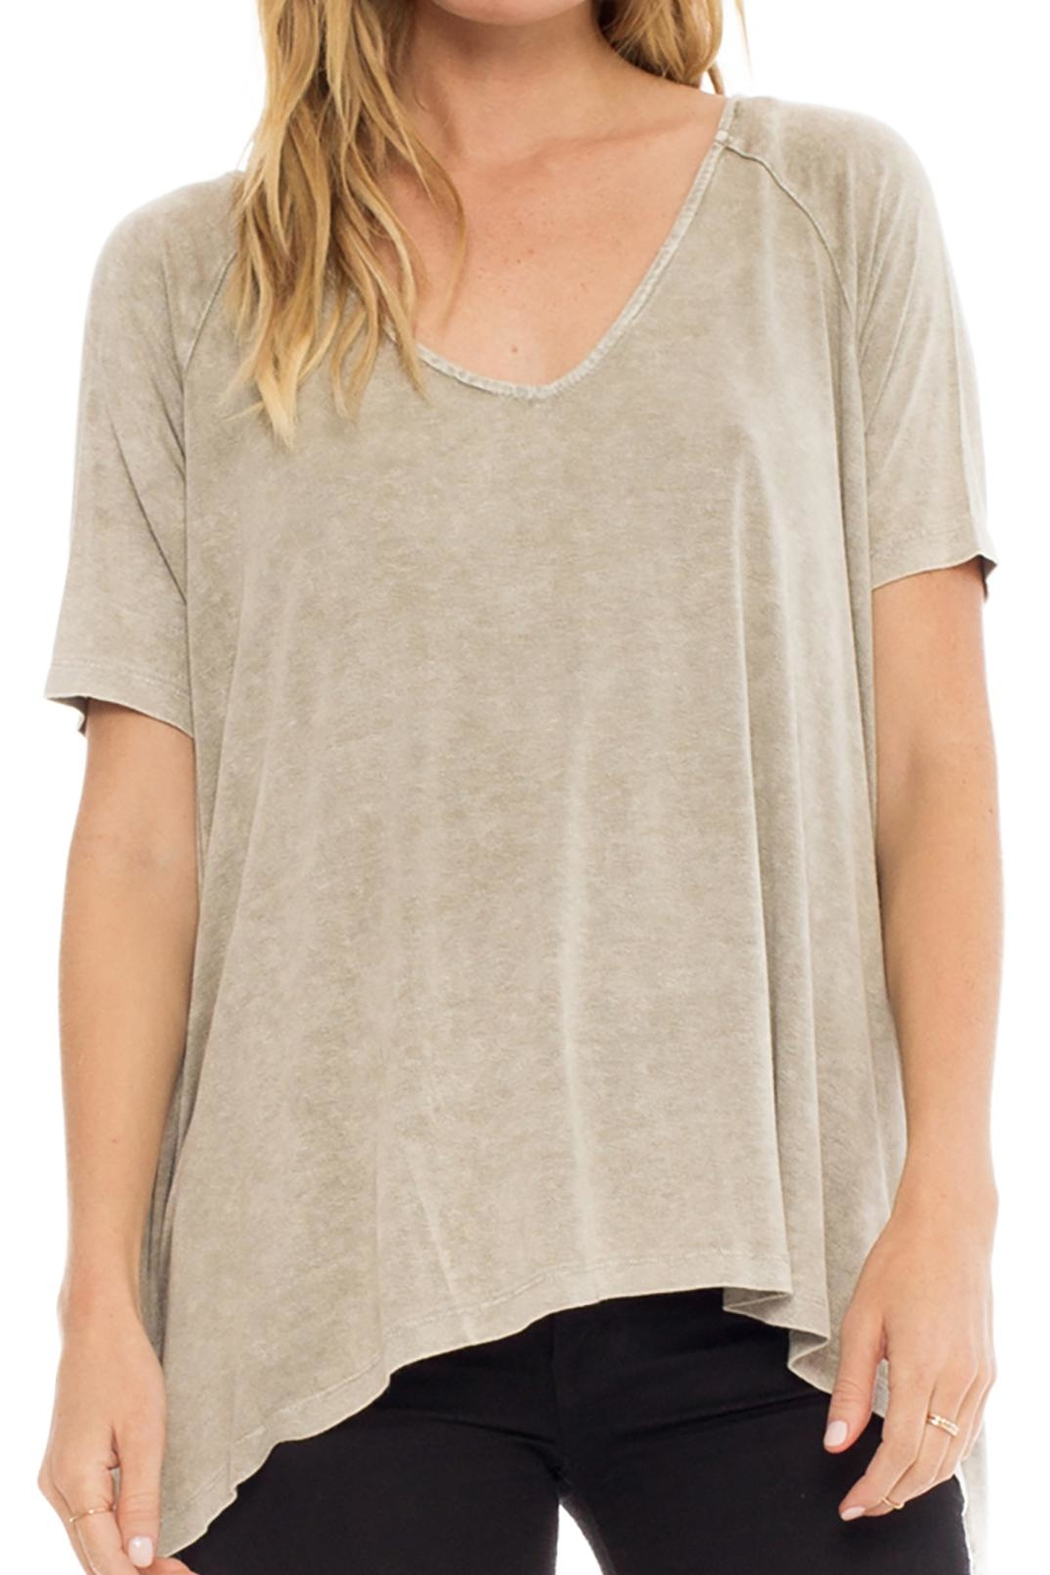 Anama Distressed Handkerchief Tee - Front Cropped Image